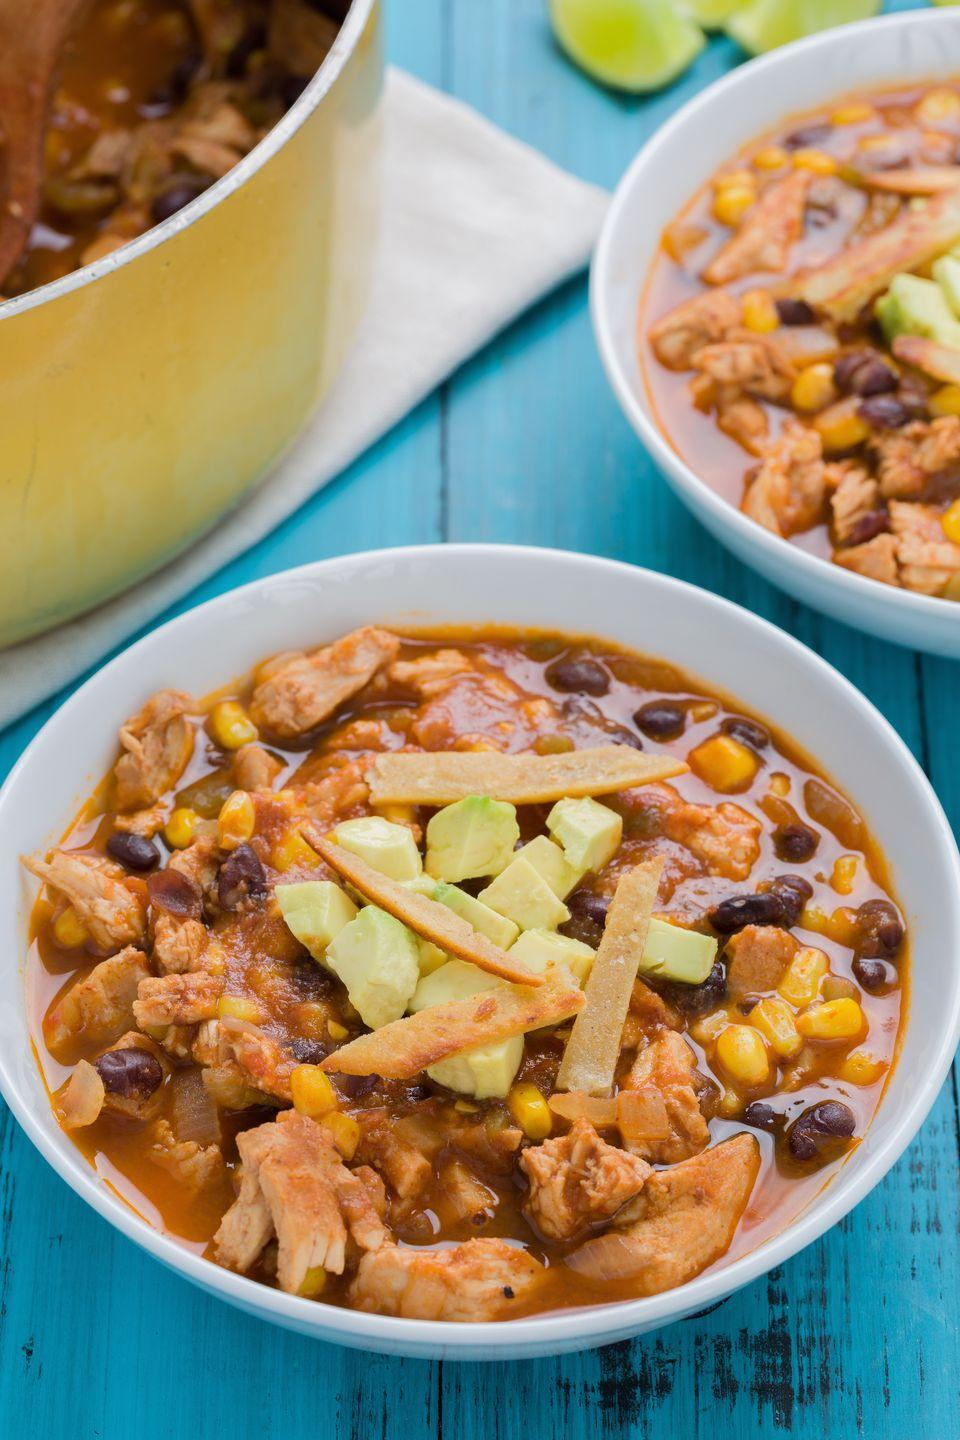 "<p><span>You can't buy this at Chipotle.</span></p><p><span>Get the recipe from </span><a href=""https://www.delish.com/cooking/recipe-ideas/recipes/a44200/carnitas-enchilada-soup-recipe/"" rel=""nofollow noopener"" target=""_blank"" data-ylk=""slk:Delish"" class=""link rapid-noclick-resp"">Delish</a><span>.</span></p>"